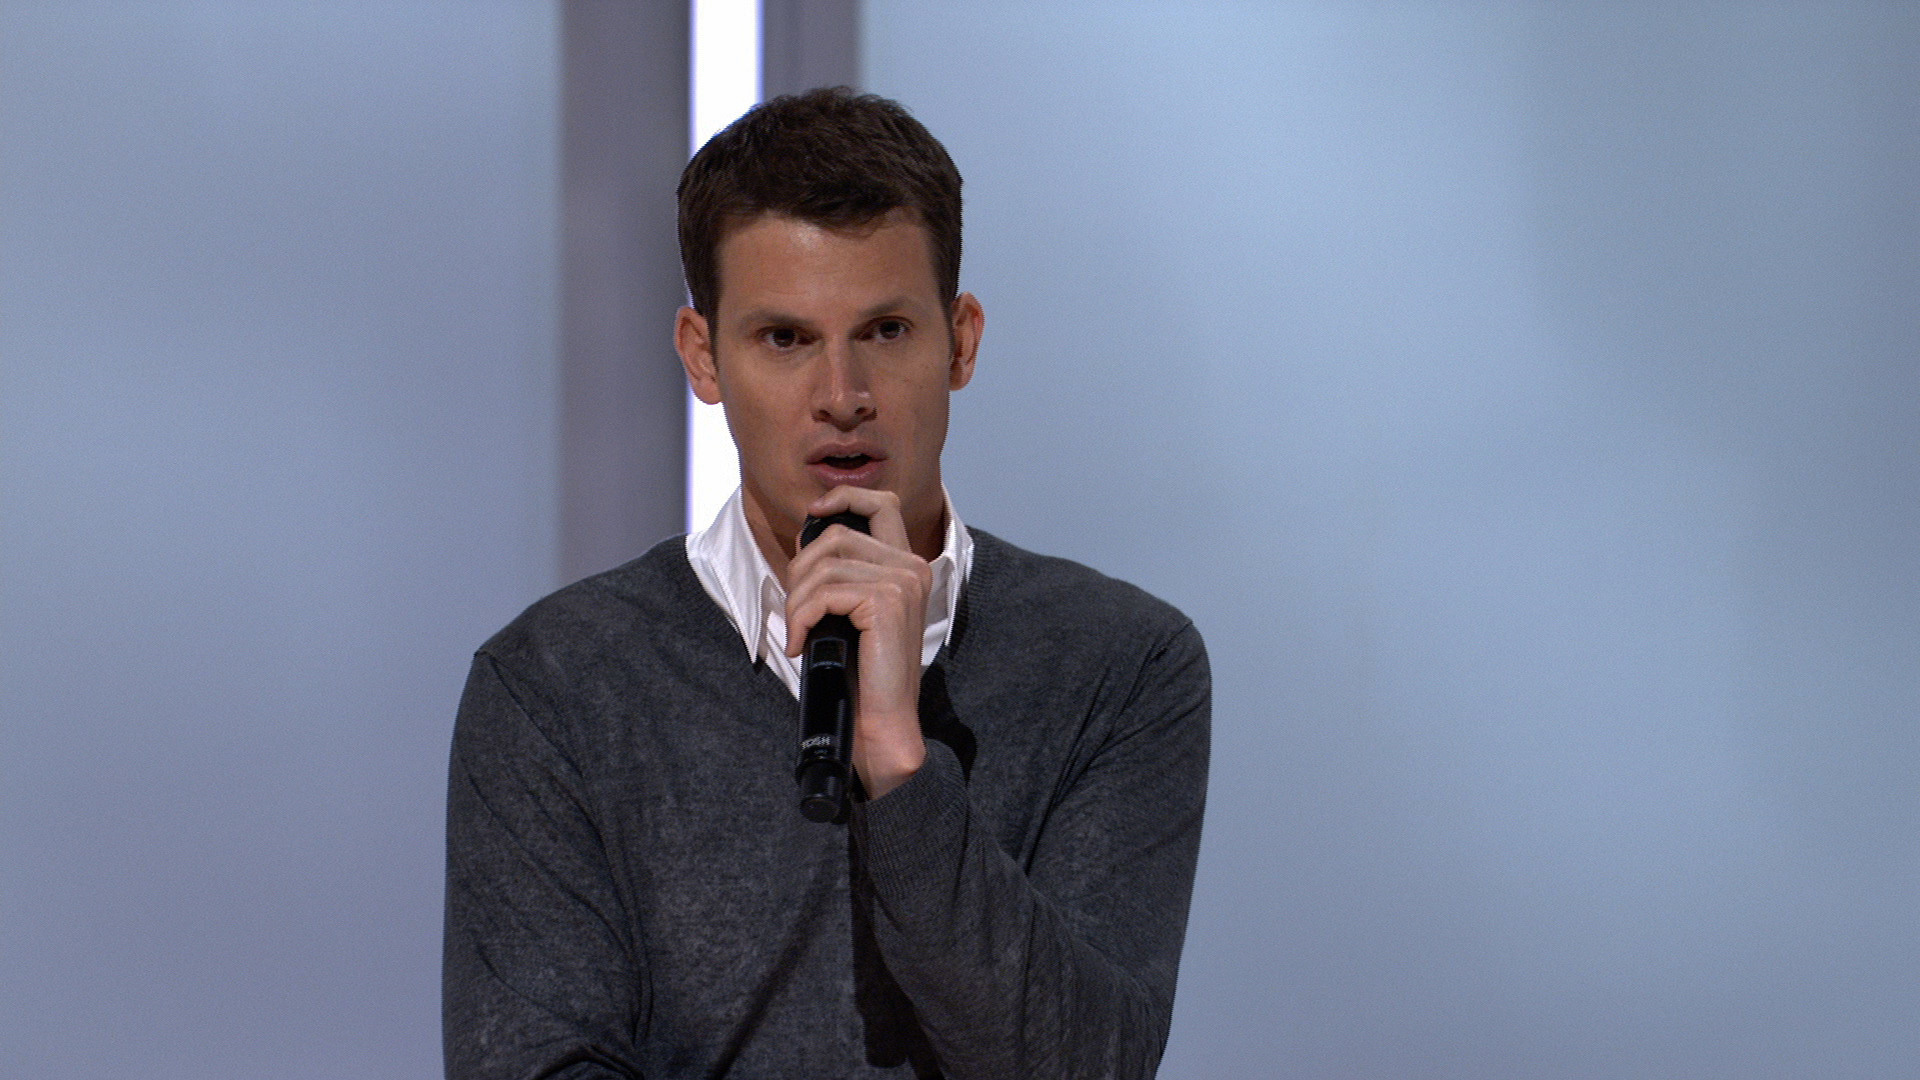 Daniel Tosh - Personal Line of Decency